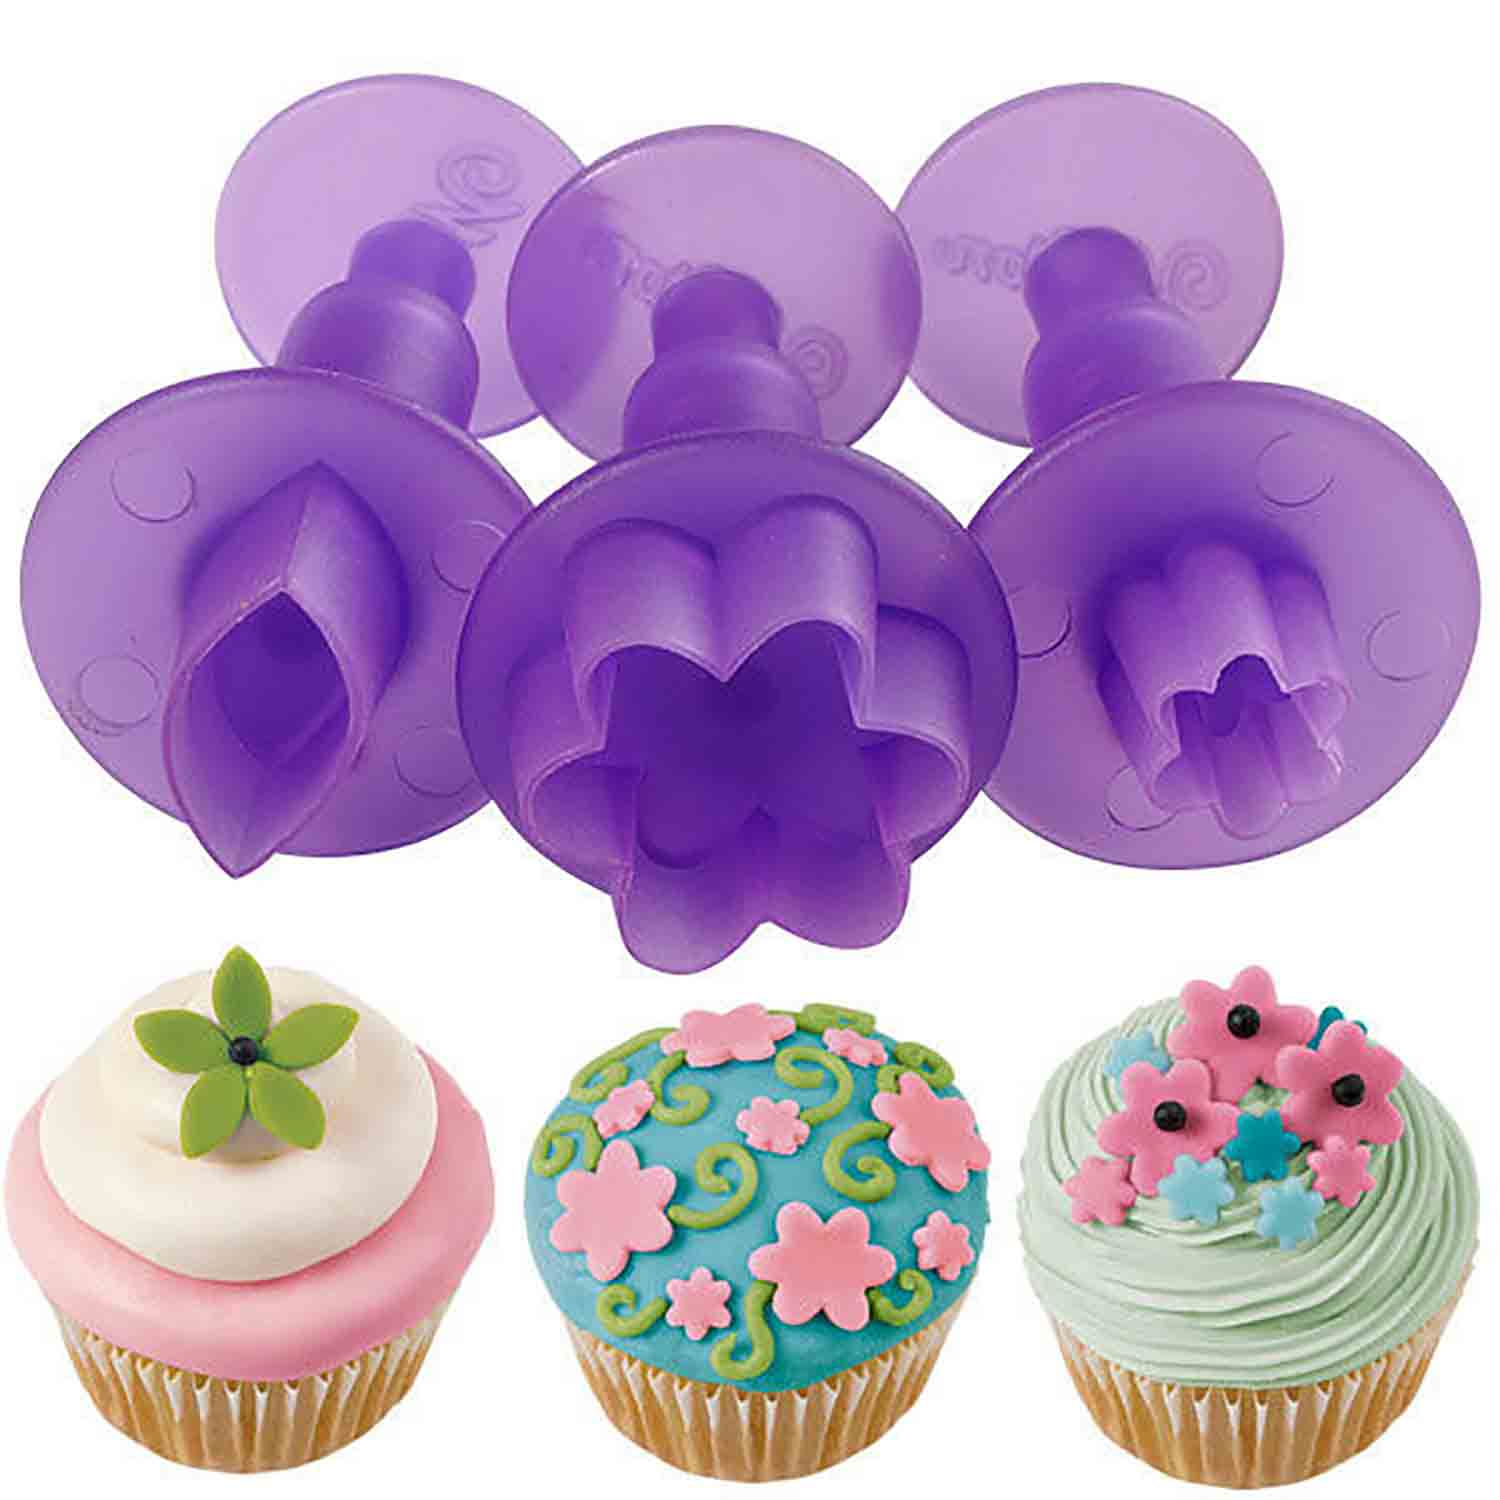 Blossoms and Leaf Mini Fondant Plunger Cutter Set